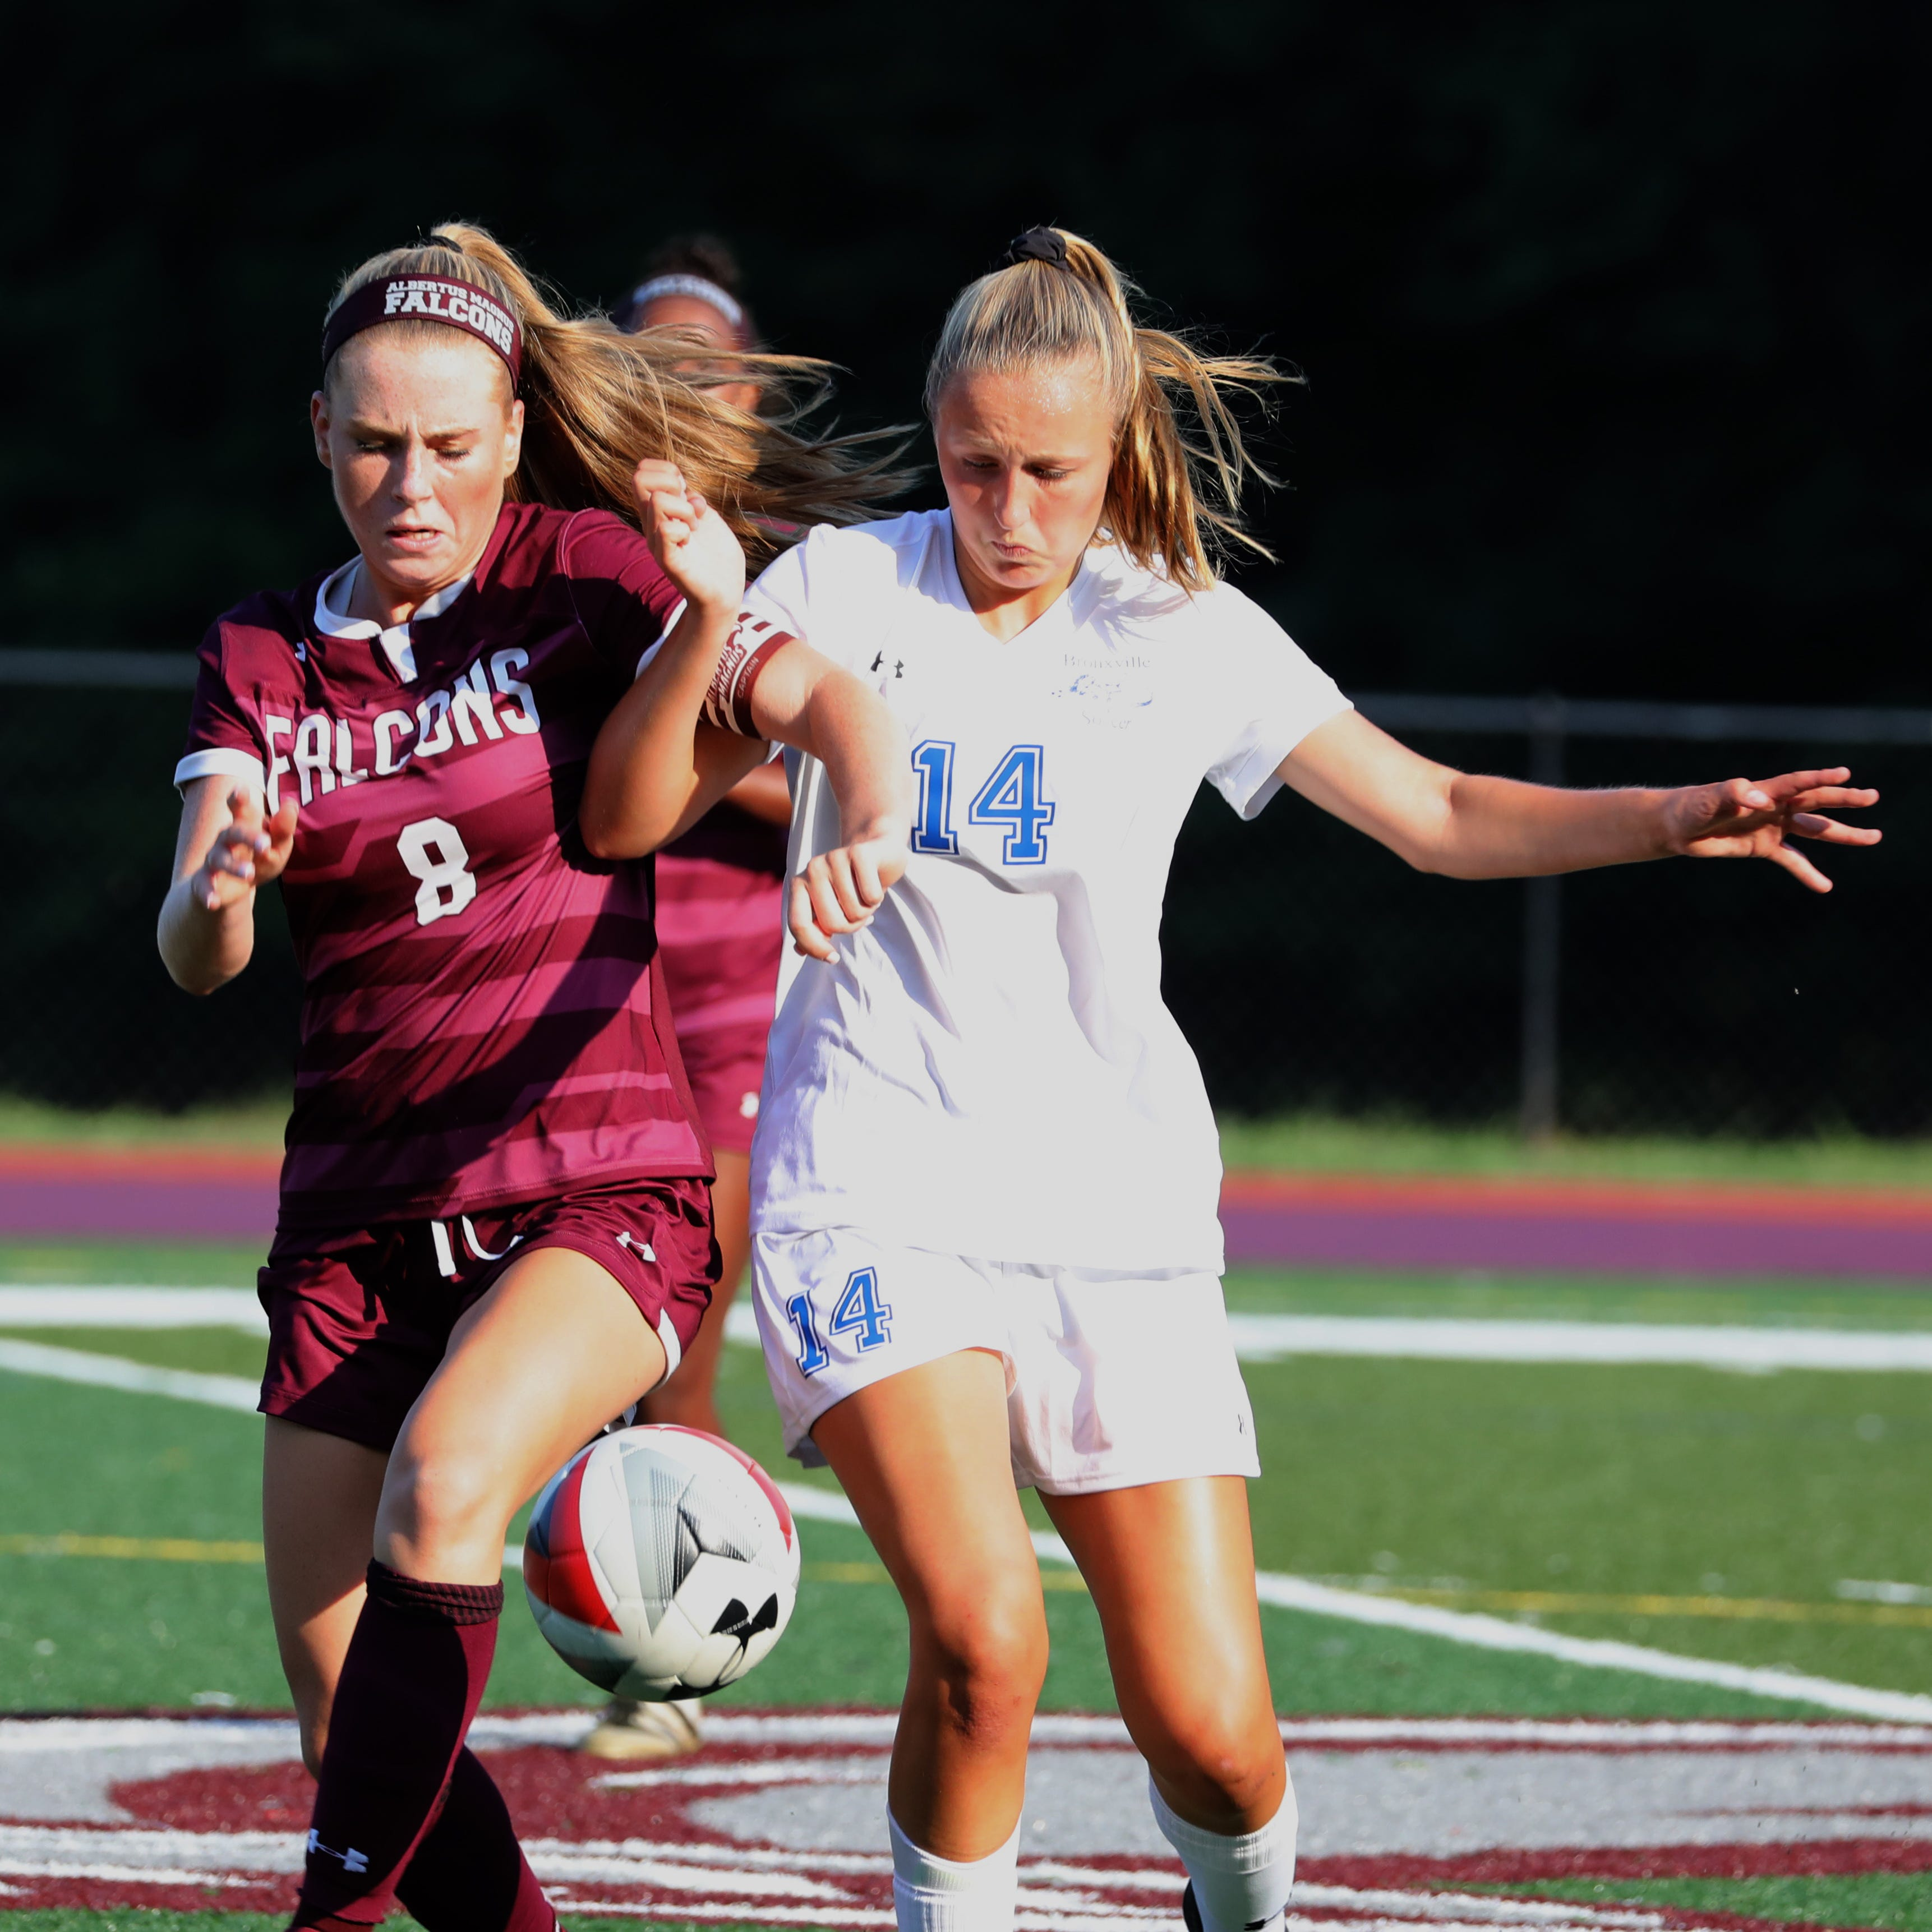 Girls soccer: Section 1 tournament brackets unveiled